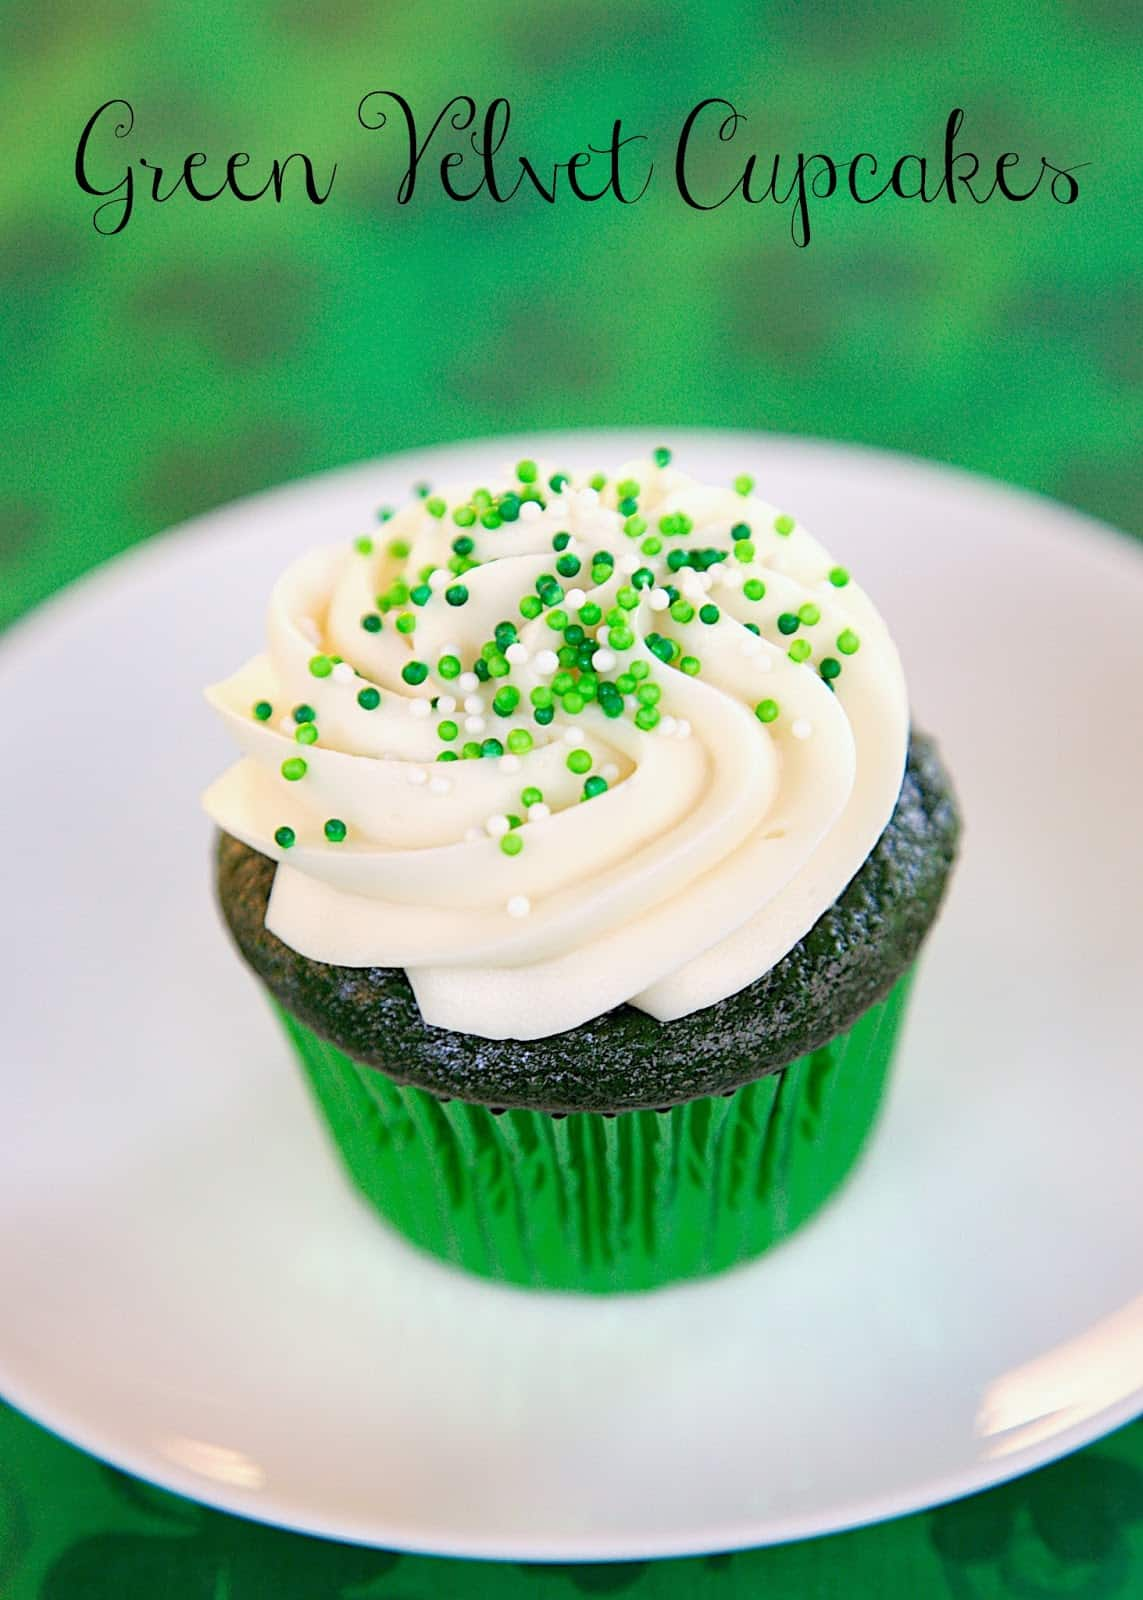 Green Velvet Cupcakes with Cream Cheese Frosting - cupcakes made with cake mix, buttermilk, green food coloring and topped with homemade cream cheese frosting. Perfect for St. Patrick's Day!